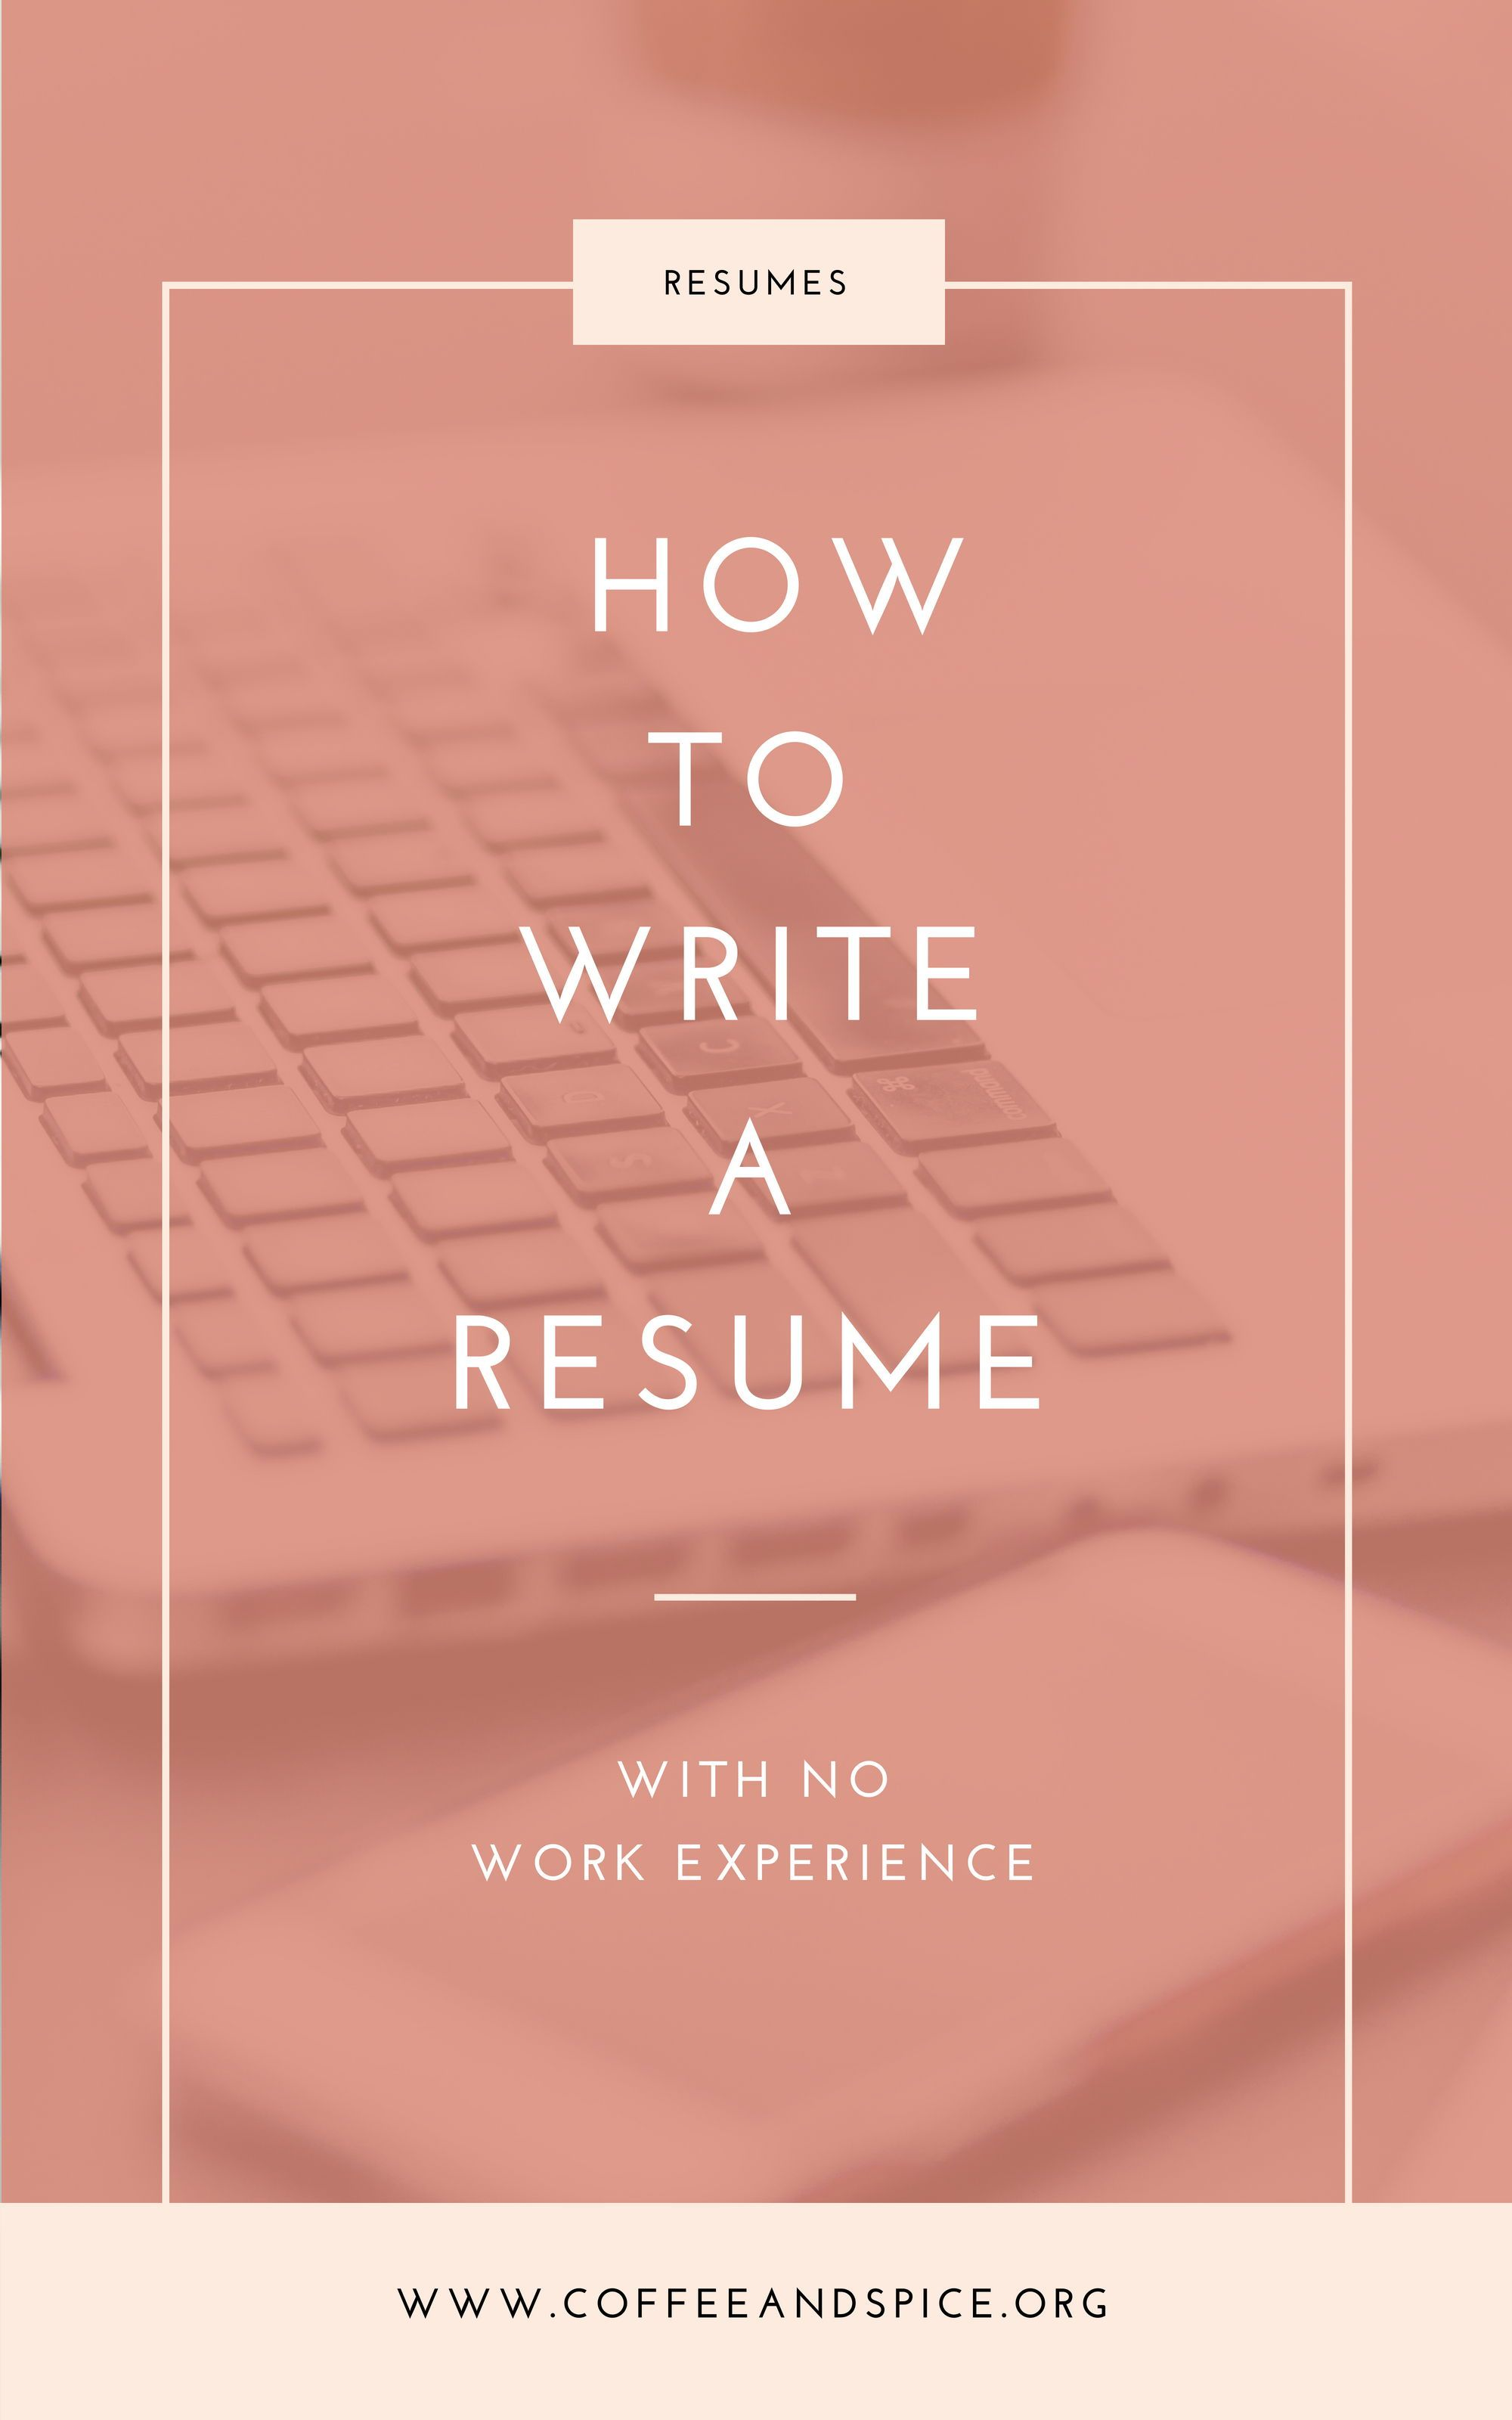 006 How to Write a Resume With No Work Experience Online